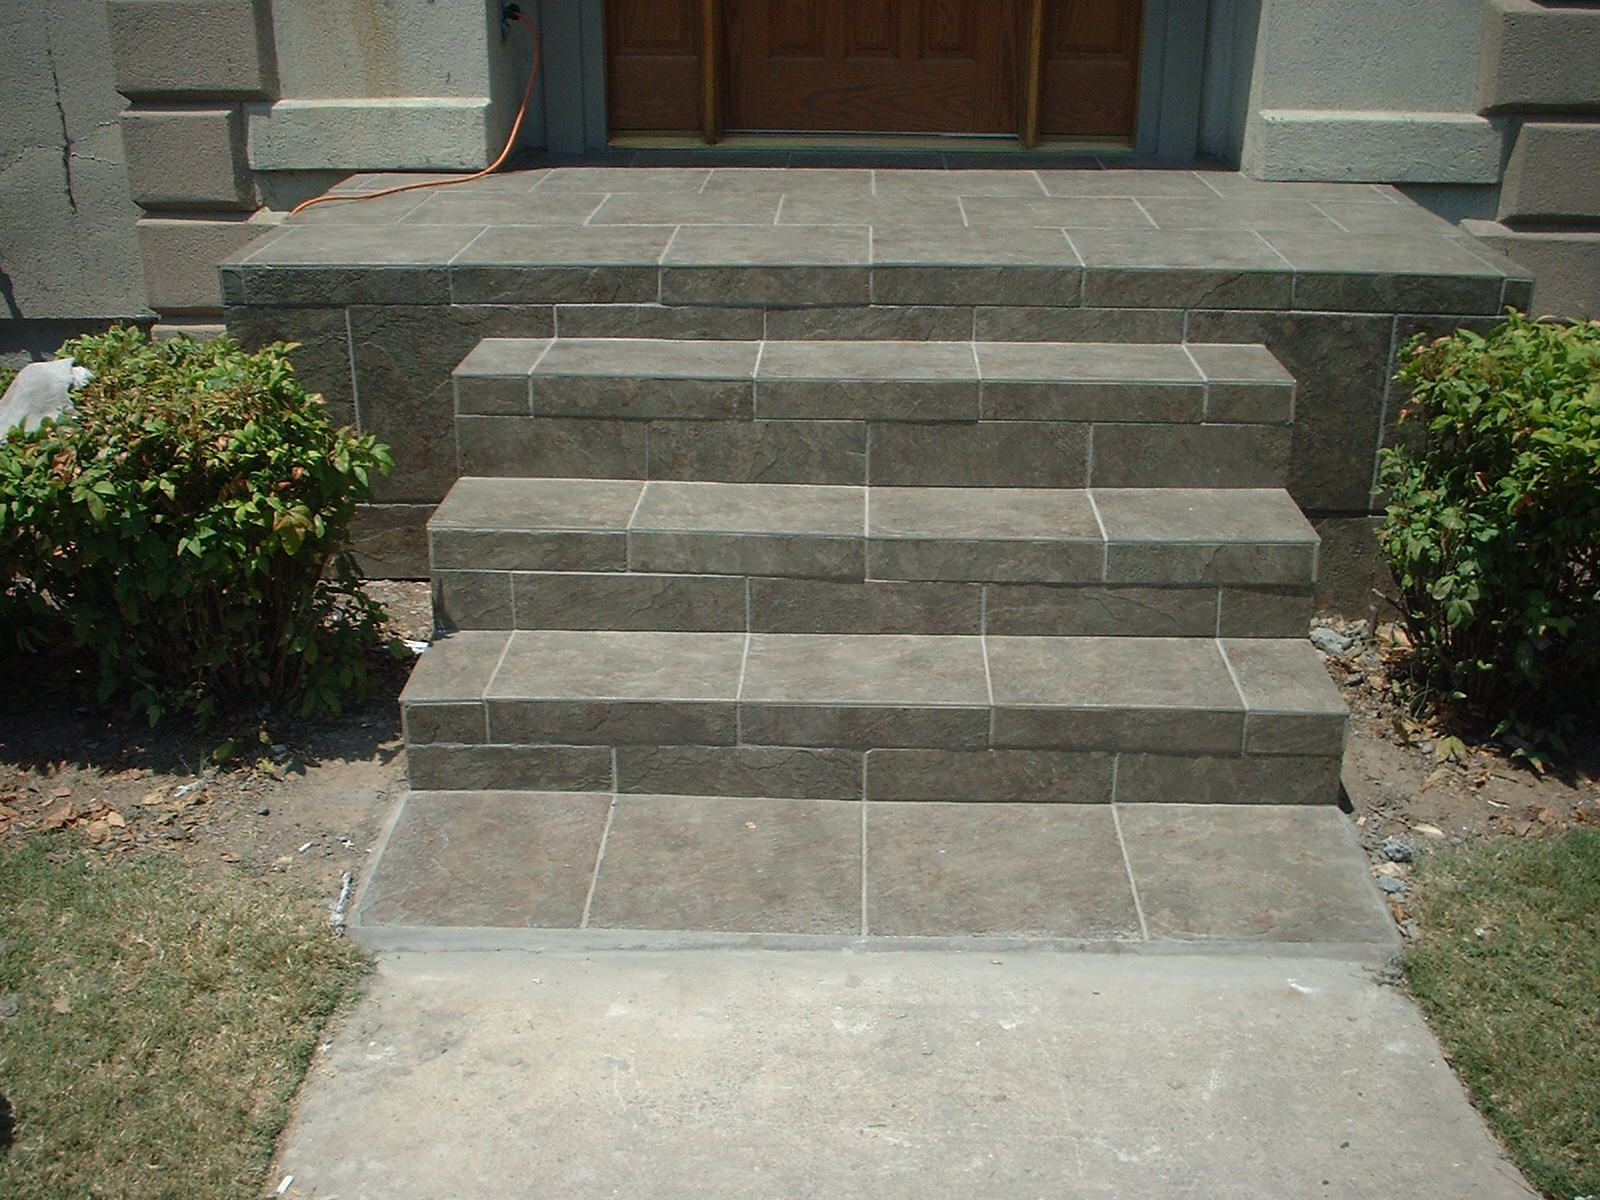 slate tile front porch and steps | future house enhancements